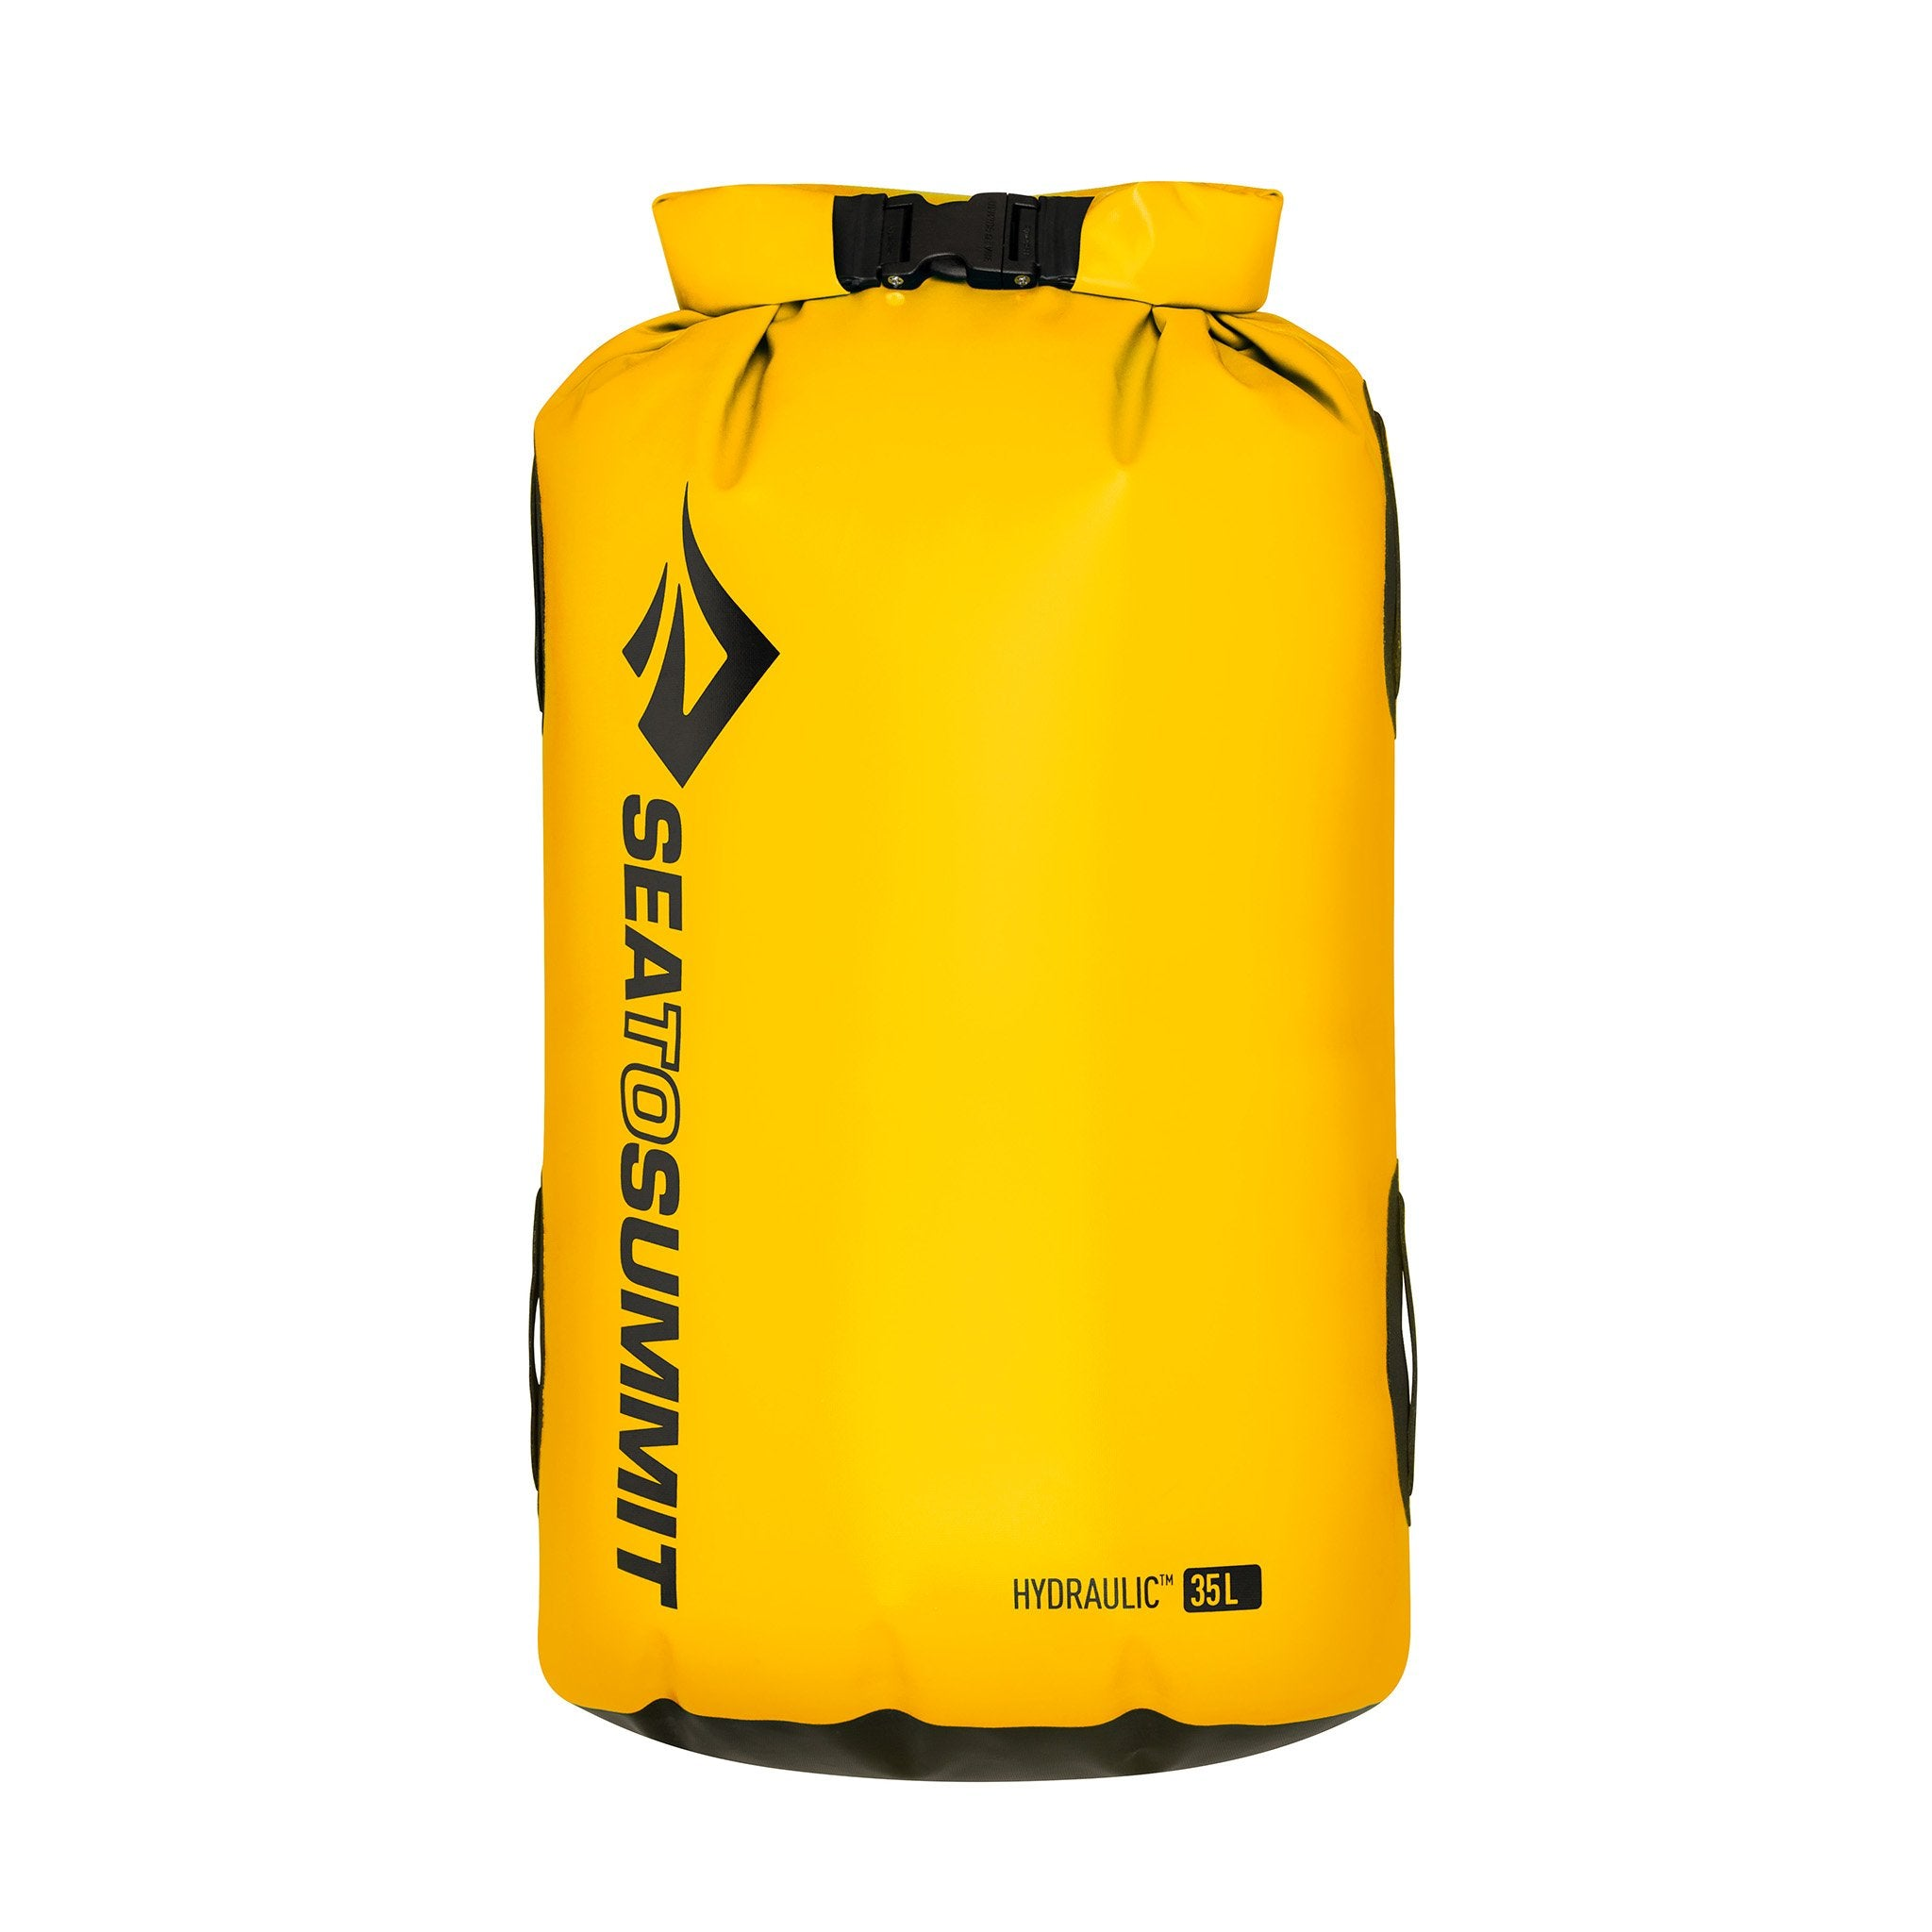 Hydraulic_Dry_Bag___35_Liter___Yellow